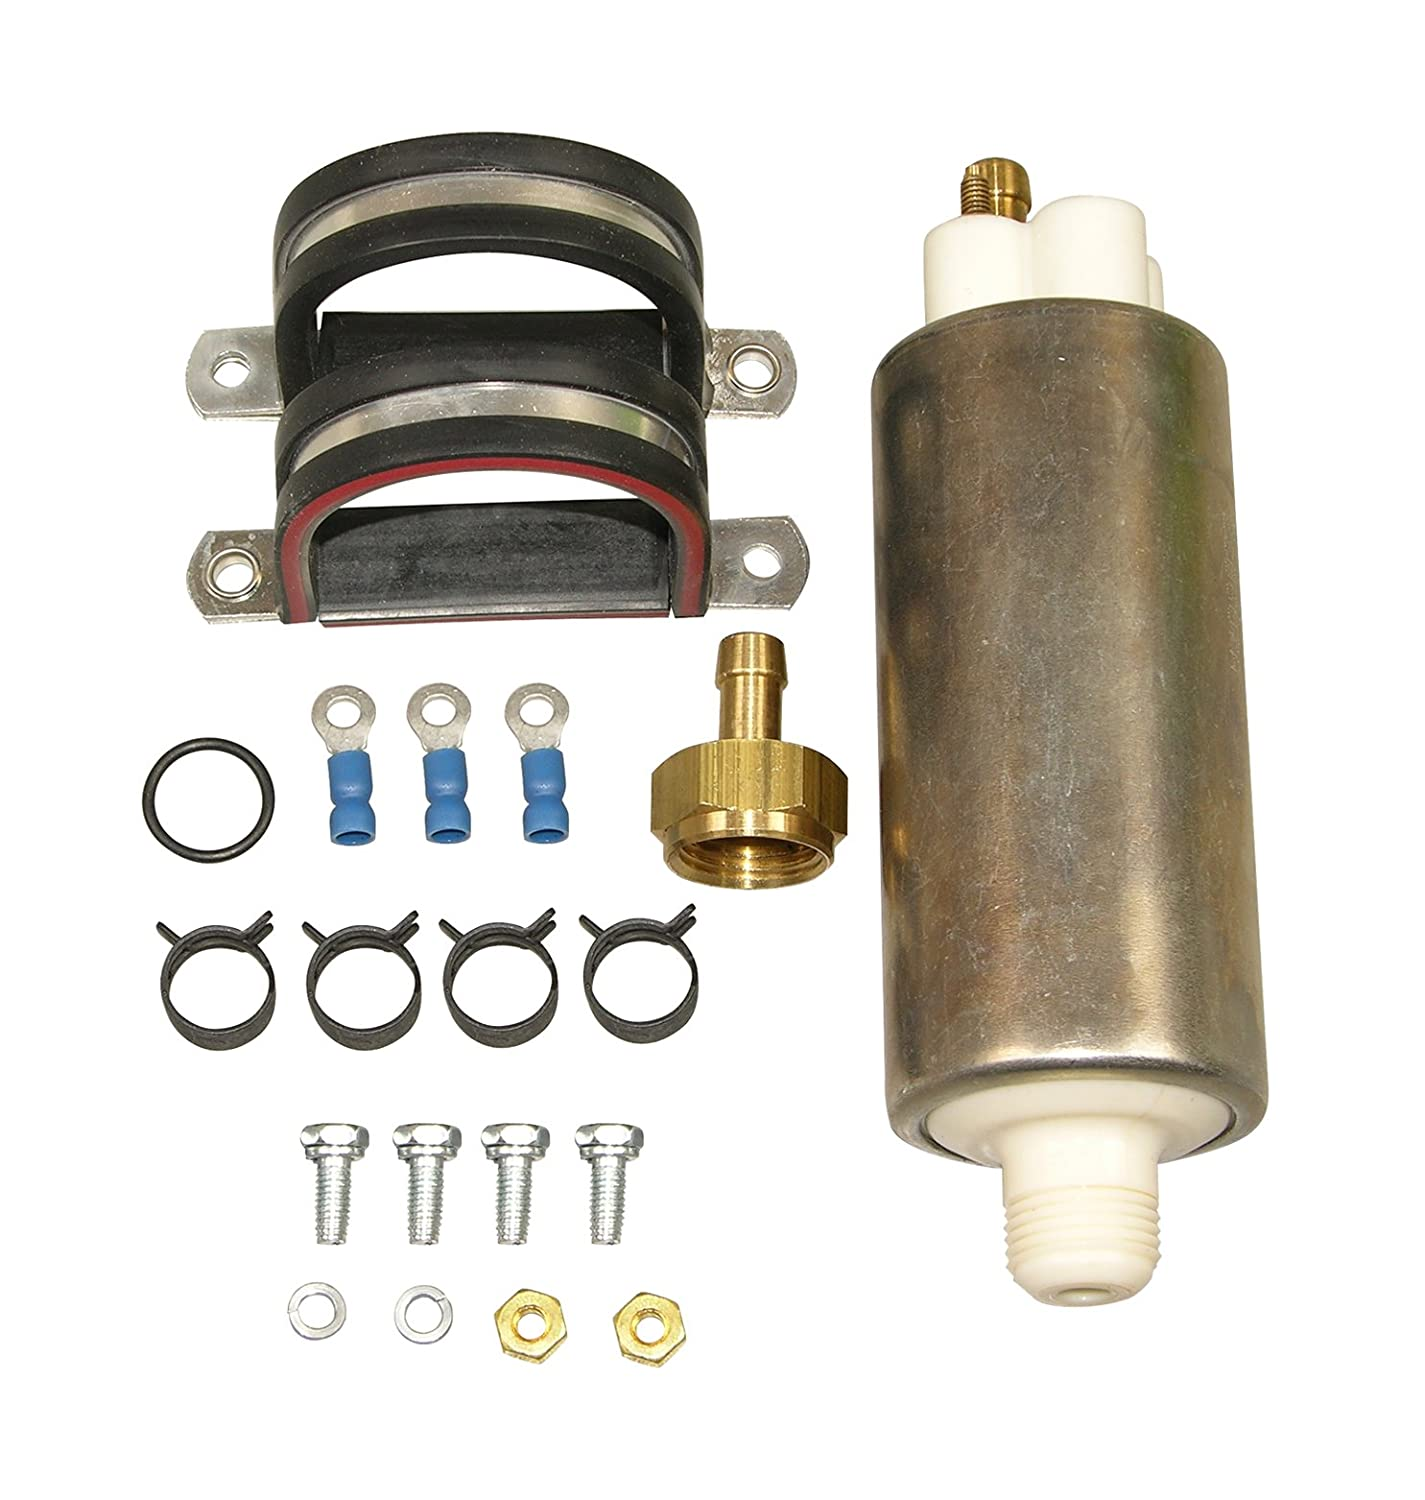 Airtex E8445 Universal In Line Electric Fuel Pump For 1973 Porsche Injected Systems Automotive